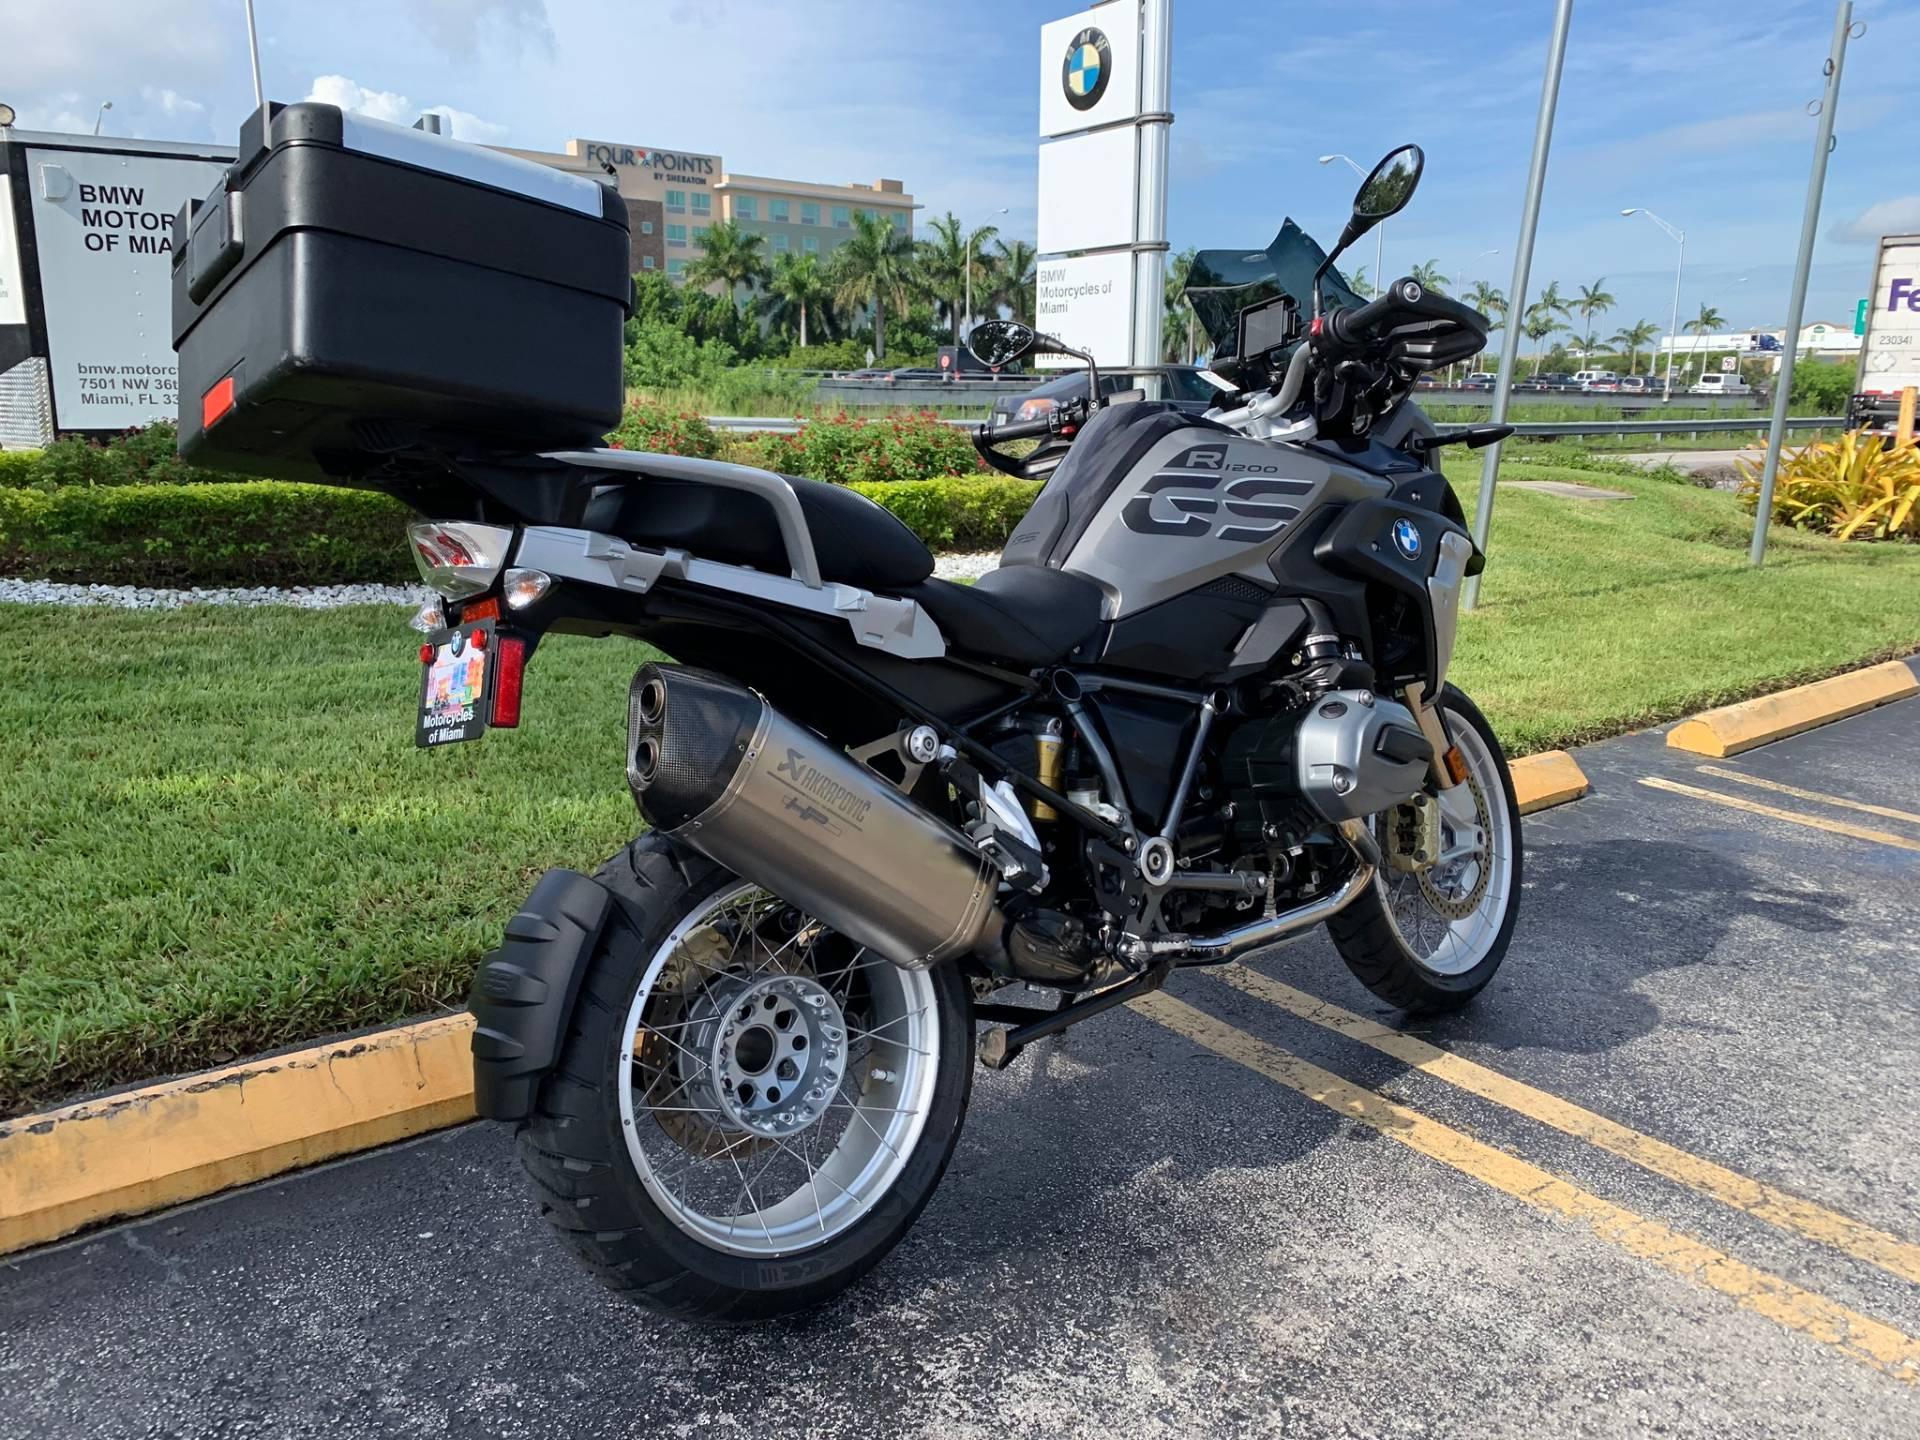 Used 2018 BMW R 1200 GS for sale, BMW R 1200GS for sale, BMW Motorcycle R1200GS, used BMW 1200GS, DUAL, GSA, BMW. BMW Motorcycles of Miami, Motorcycles of Miami, Motorcycles Miami, New Motorcycles, Used Motorcycles, pre-owned. #BMWMotorcyclesOfMiami #MotorcyclesOfMiami. - Photo 12